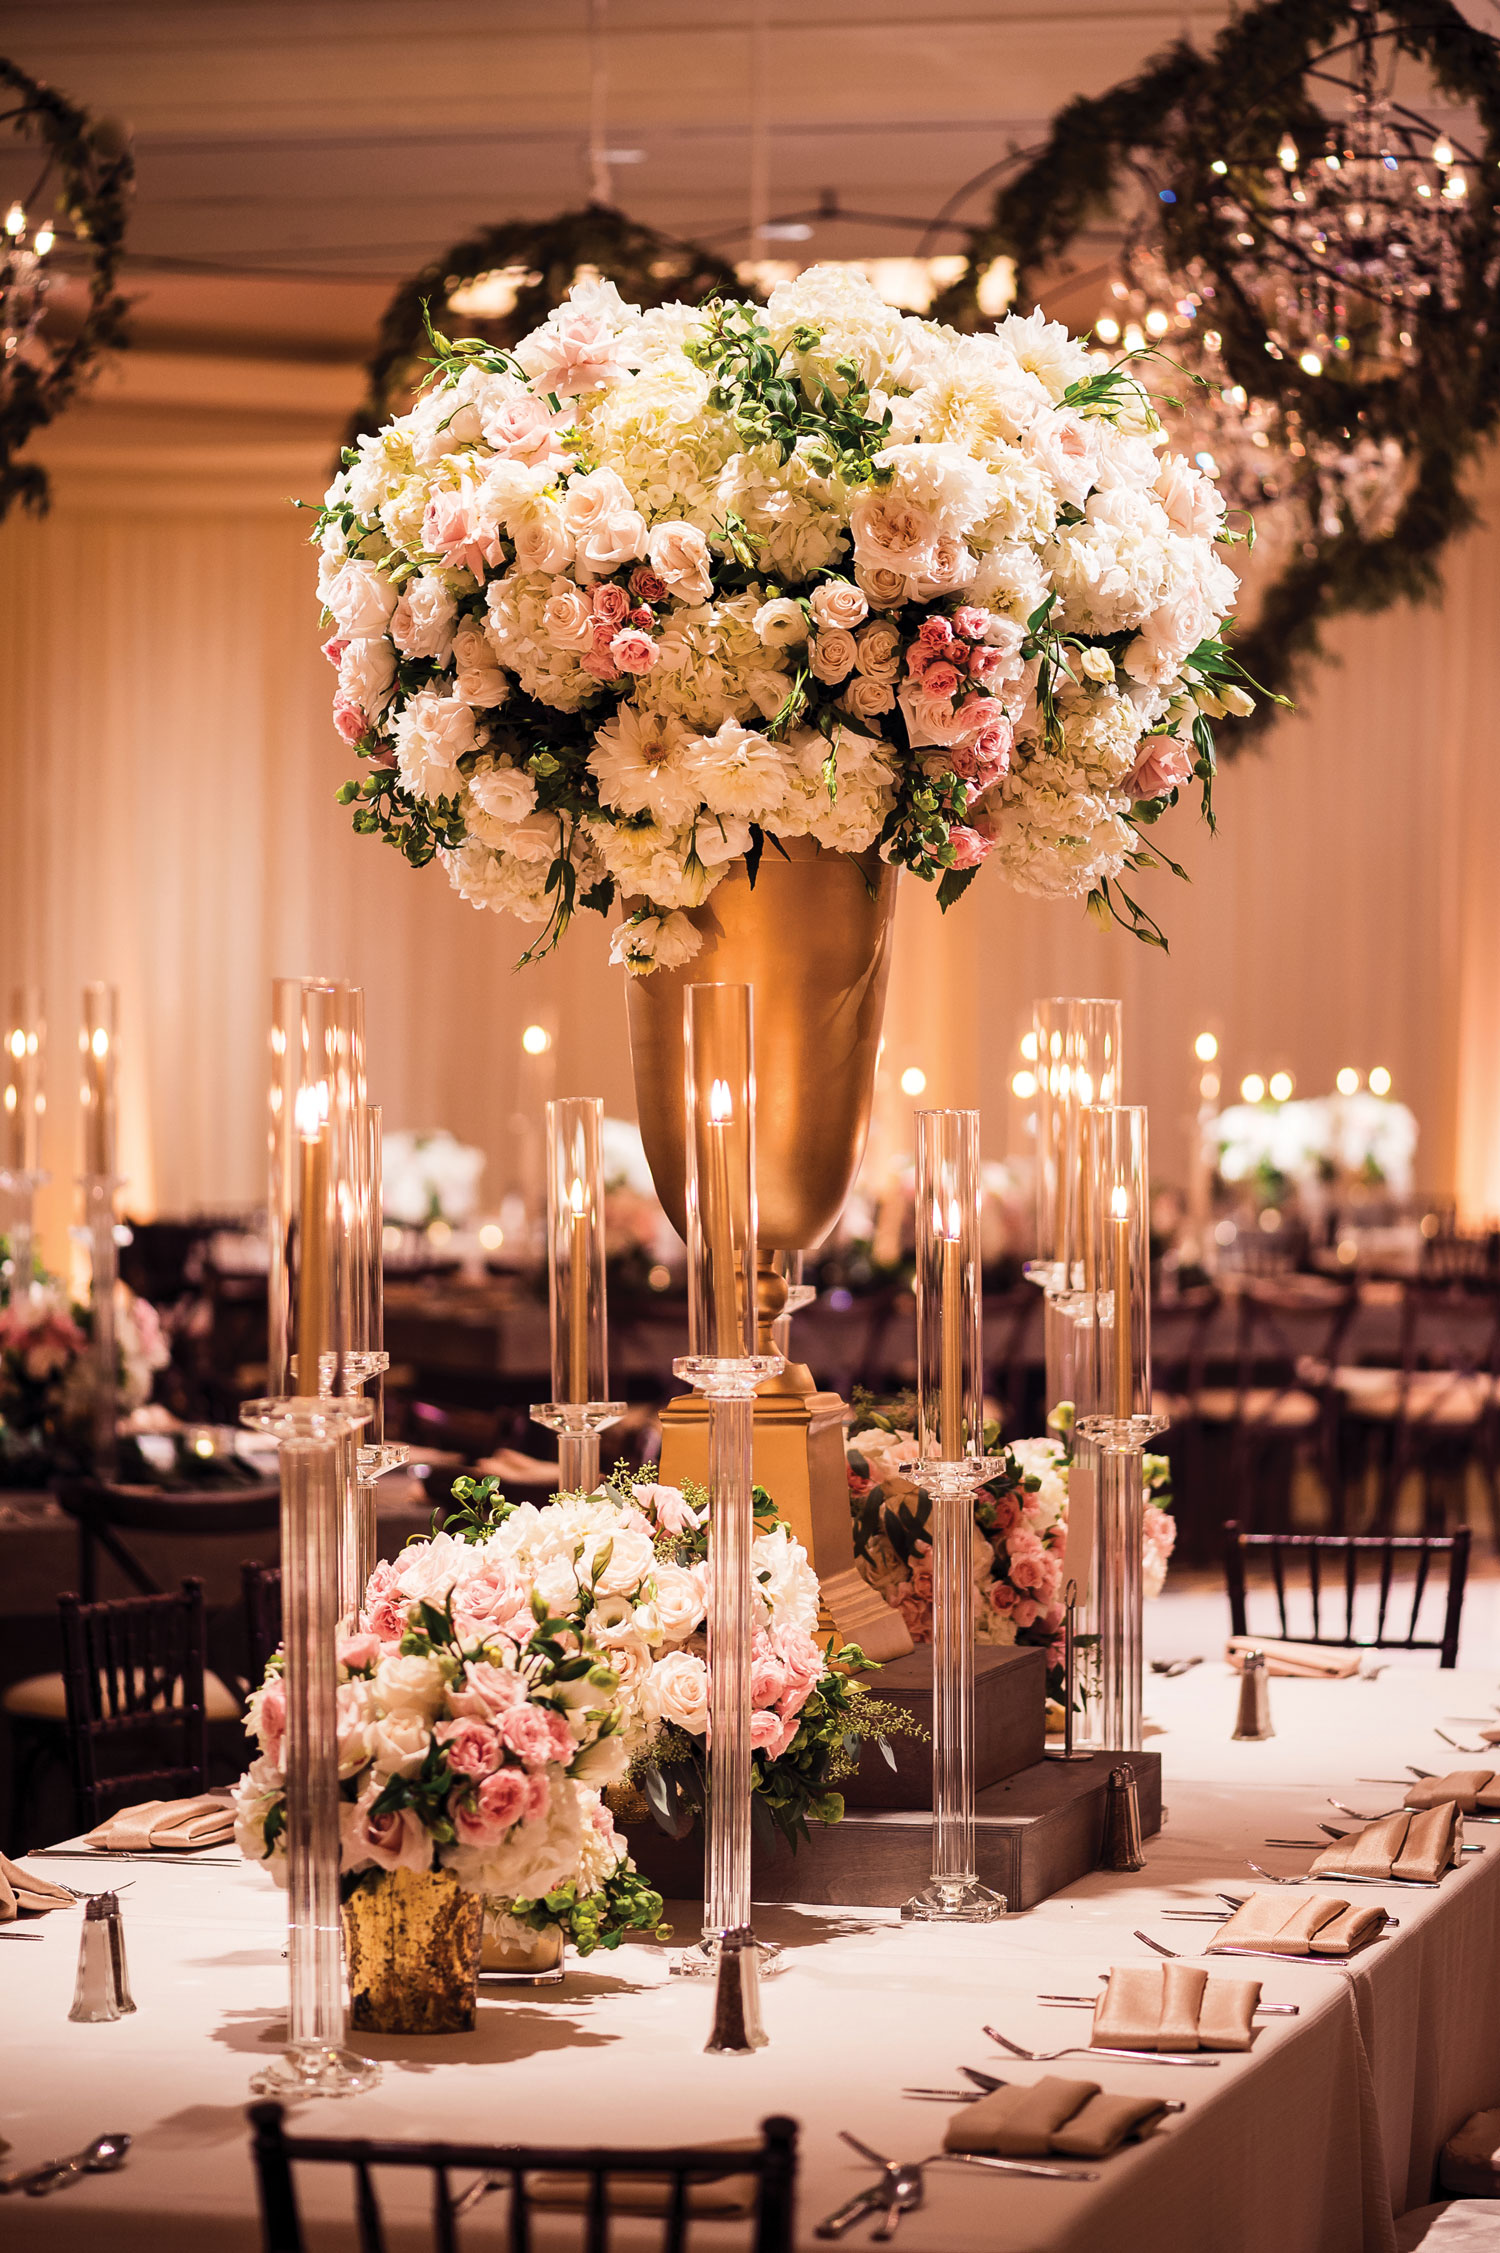 Luxury south asian wedding reception in california nahid's global events Inside Weddings fall 2018 issue